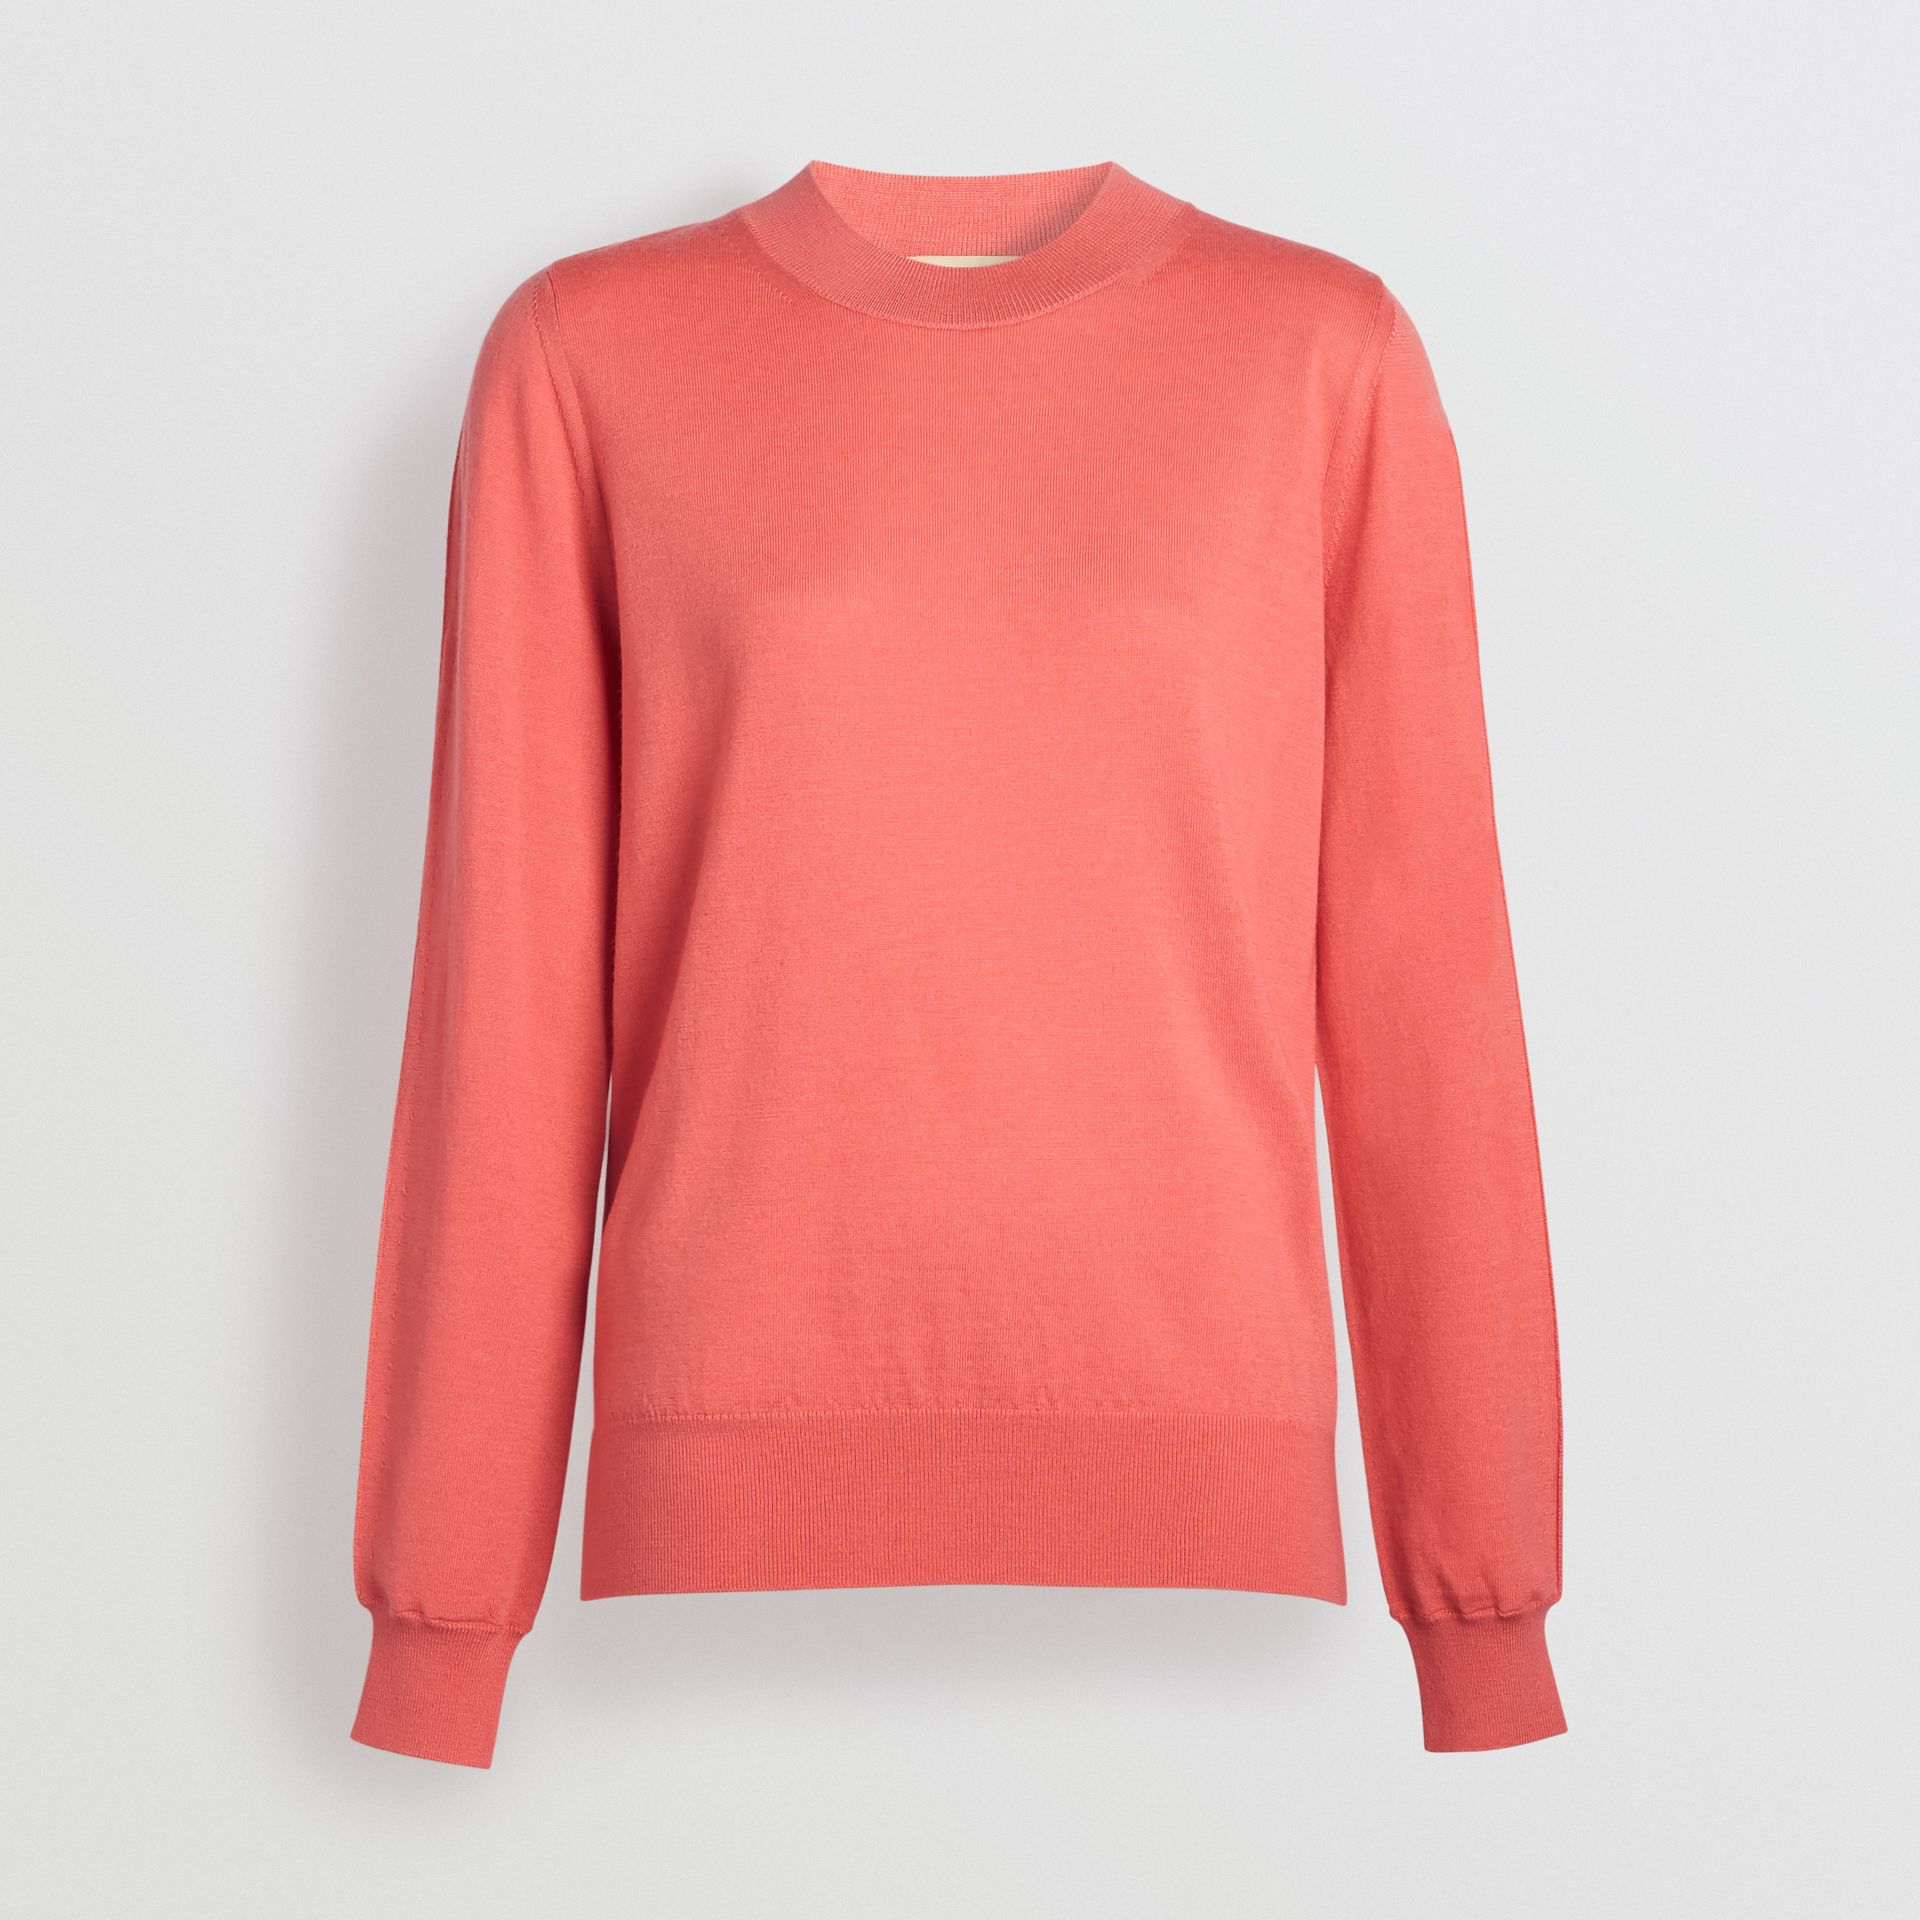 Merino Wool Crew Neck Sweater in Coral - Women | Burberry Hong Kong - gallery image 3